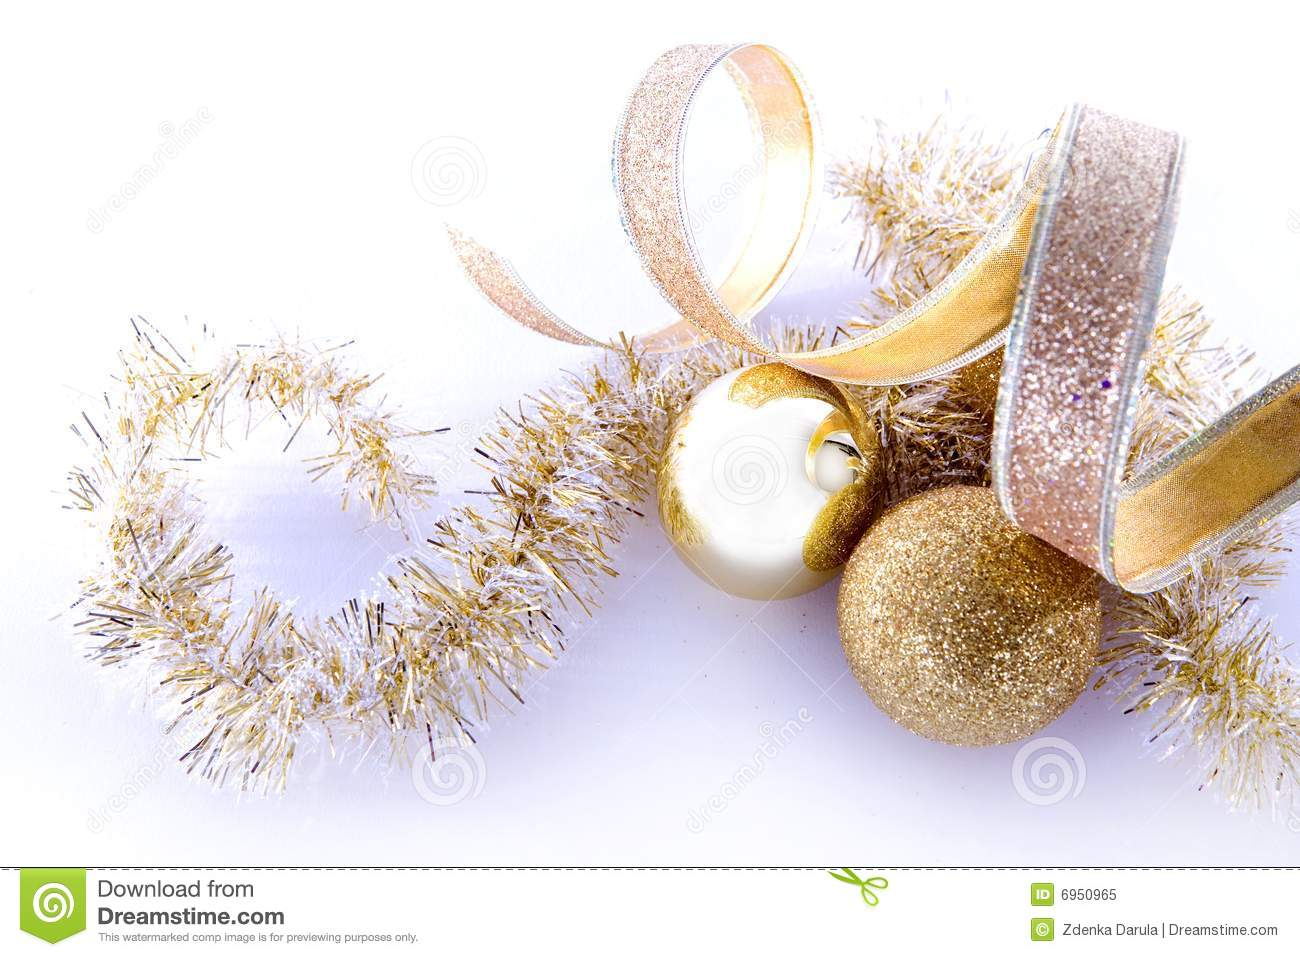 download gold christmas decorations stock image image of ornaments 6950965 - Gold Christmas Decorations